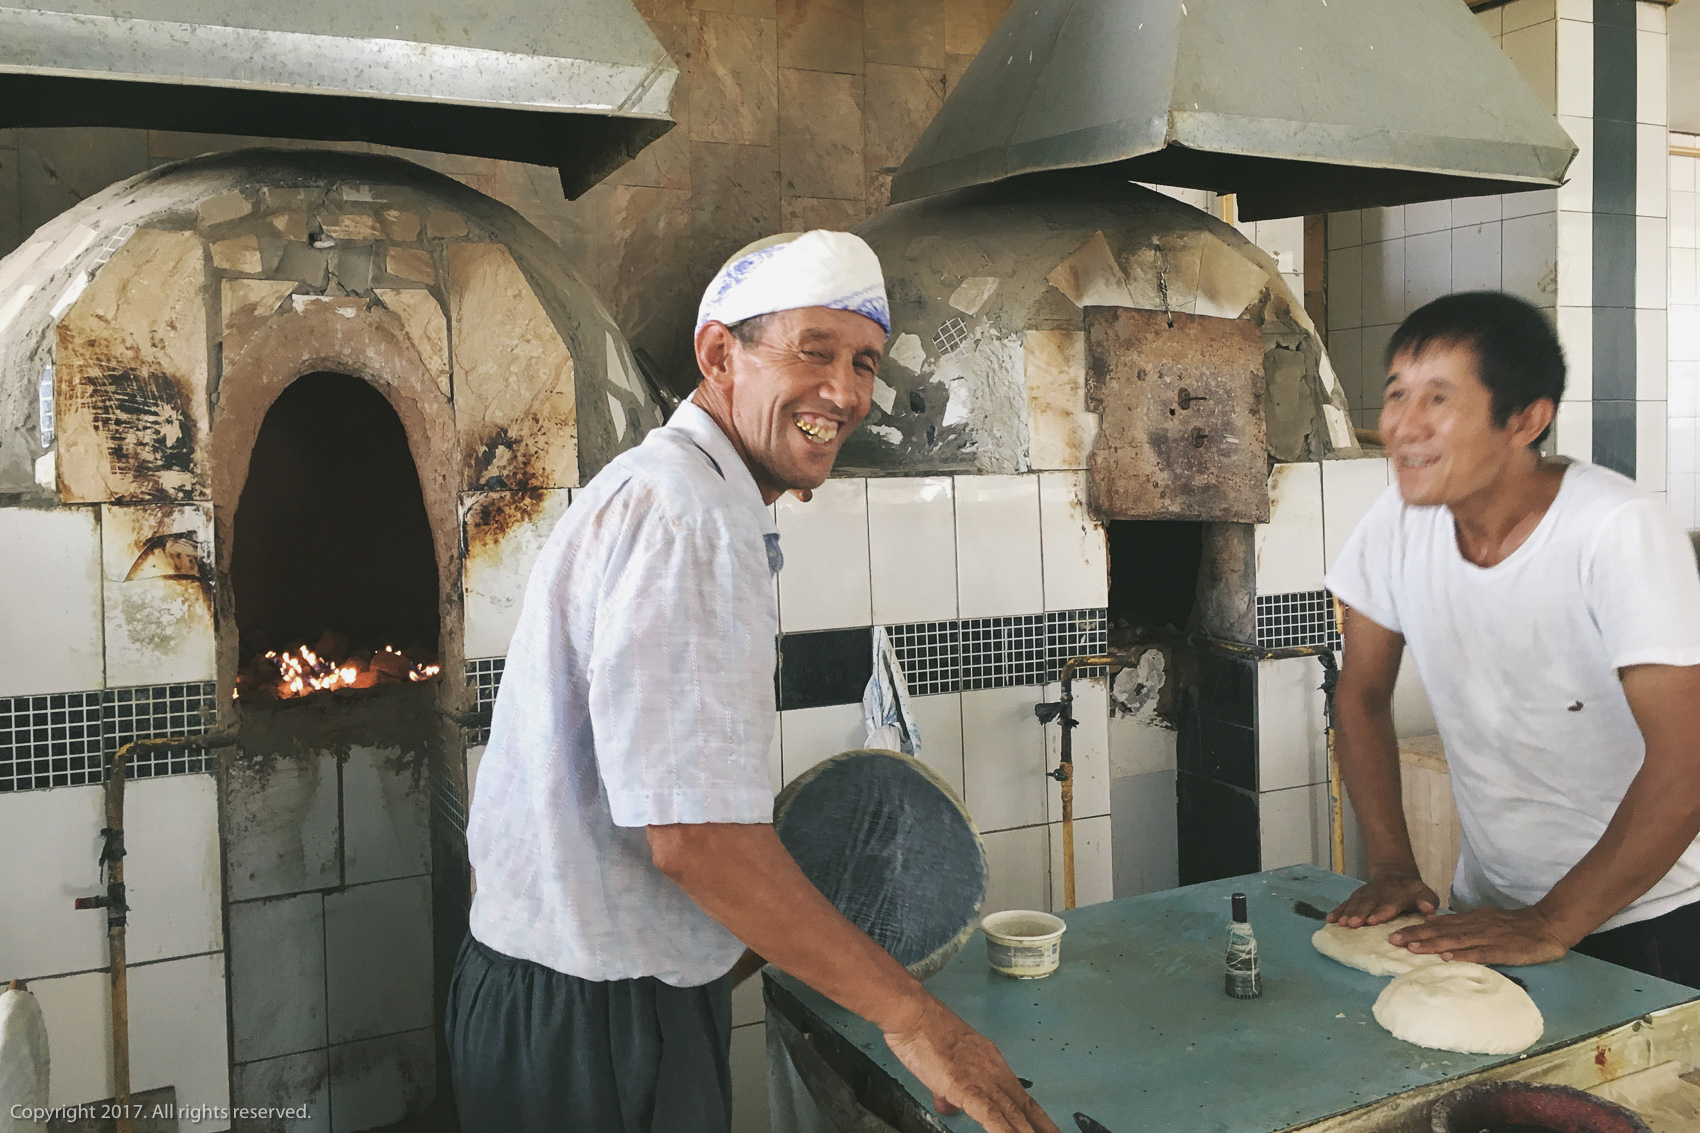 Bread-makers in Tashkent